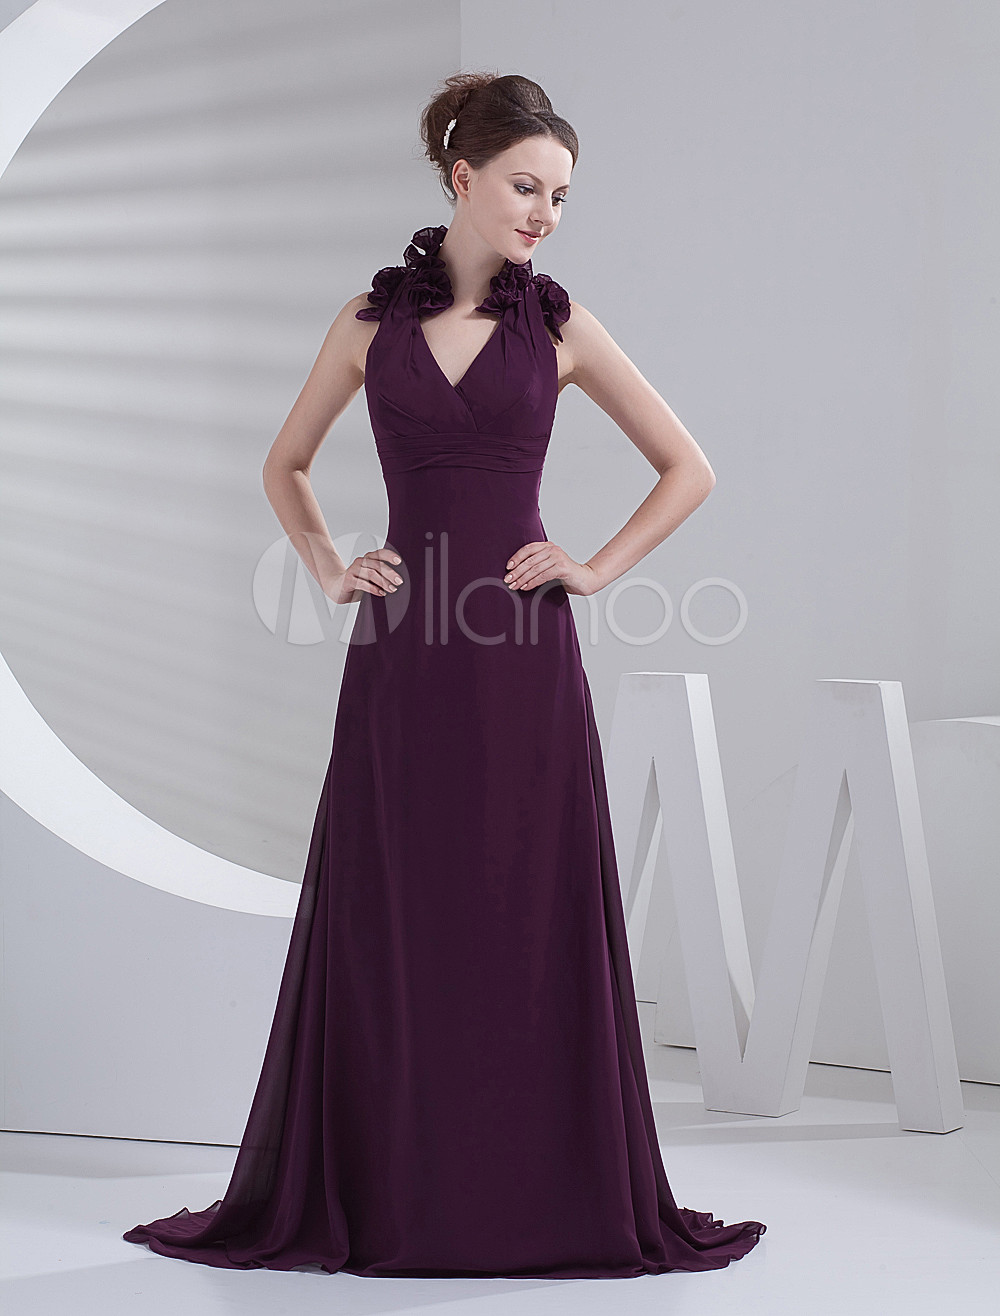 Pretty Grape Chiffon Halter Floor Length Bridesmaid Dress